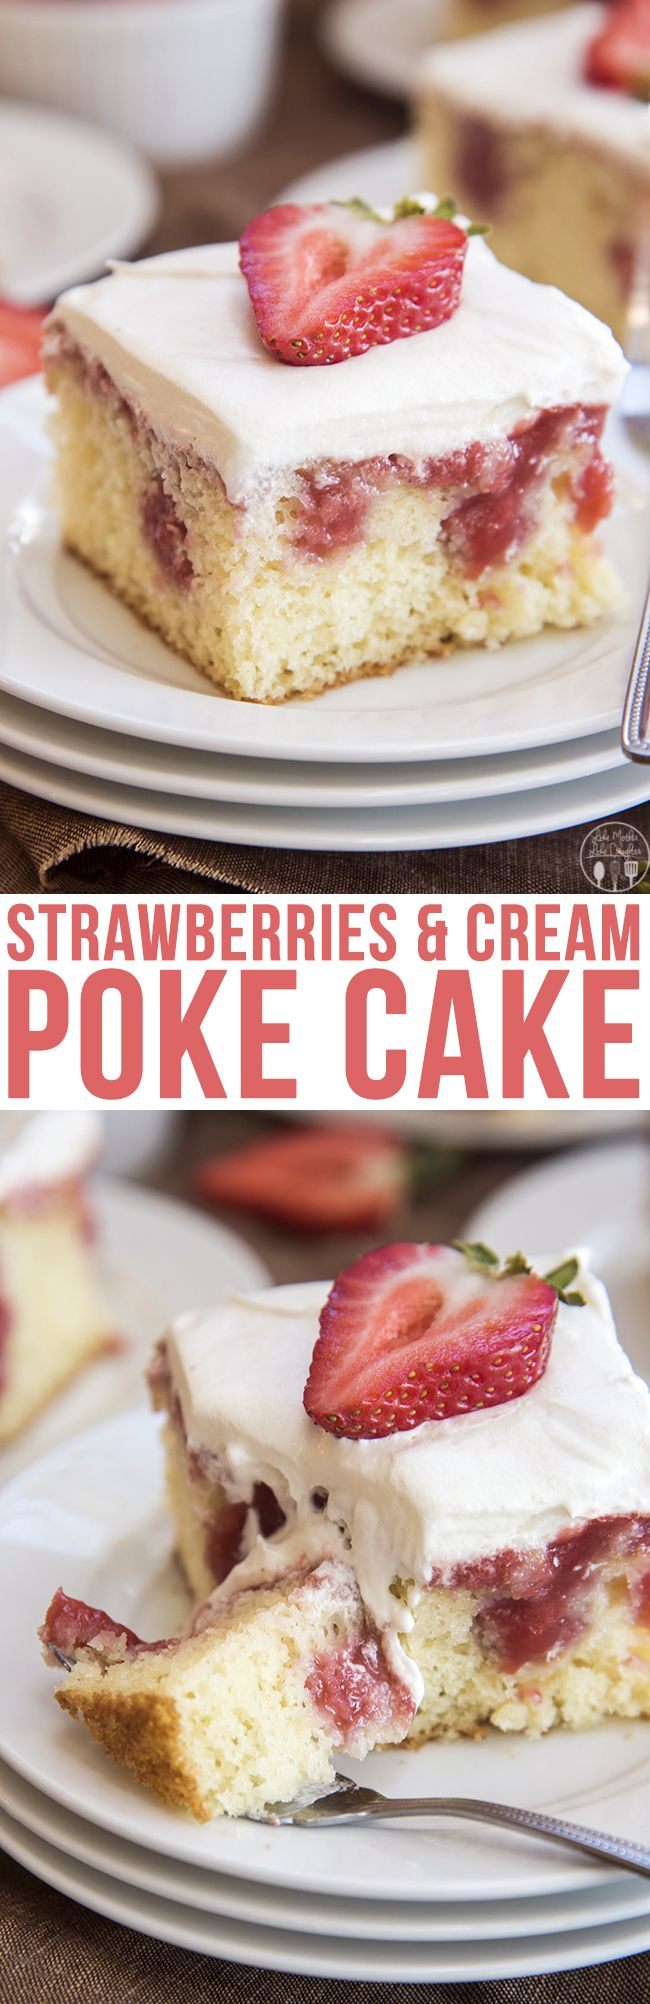 Strawberries and Cream Poke Cake - This poke cake starts with a cake mix, filled with a fresh and sweet homemade strawberry sauce and topped with whipped cream. Its perfect for an easy, yet elegant, and delicious dessert that everyone will love!